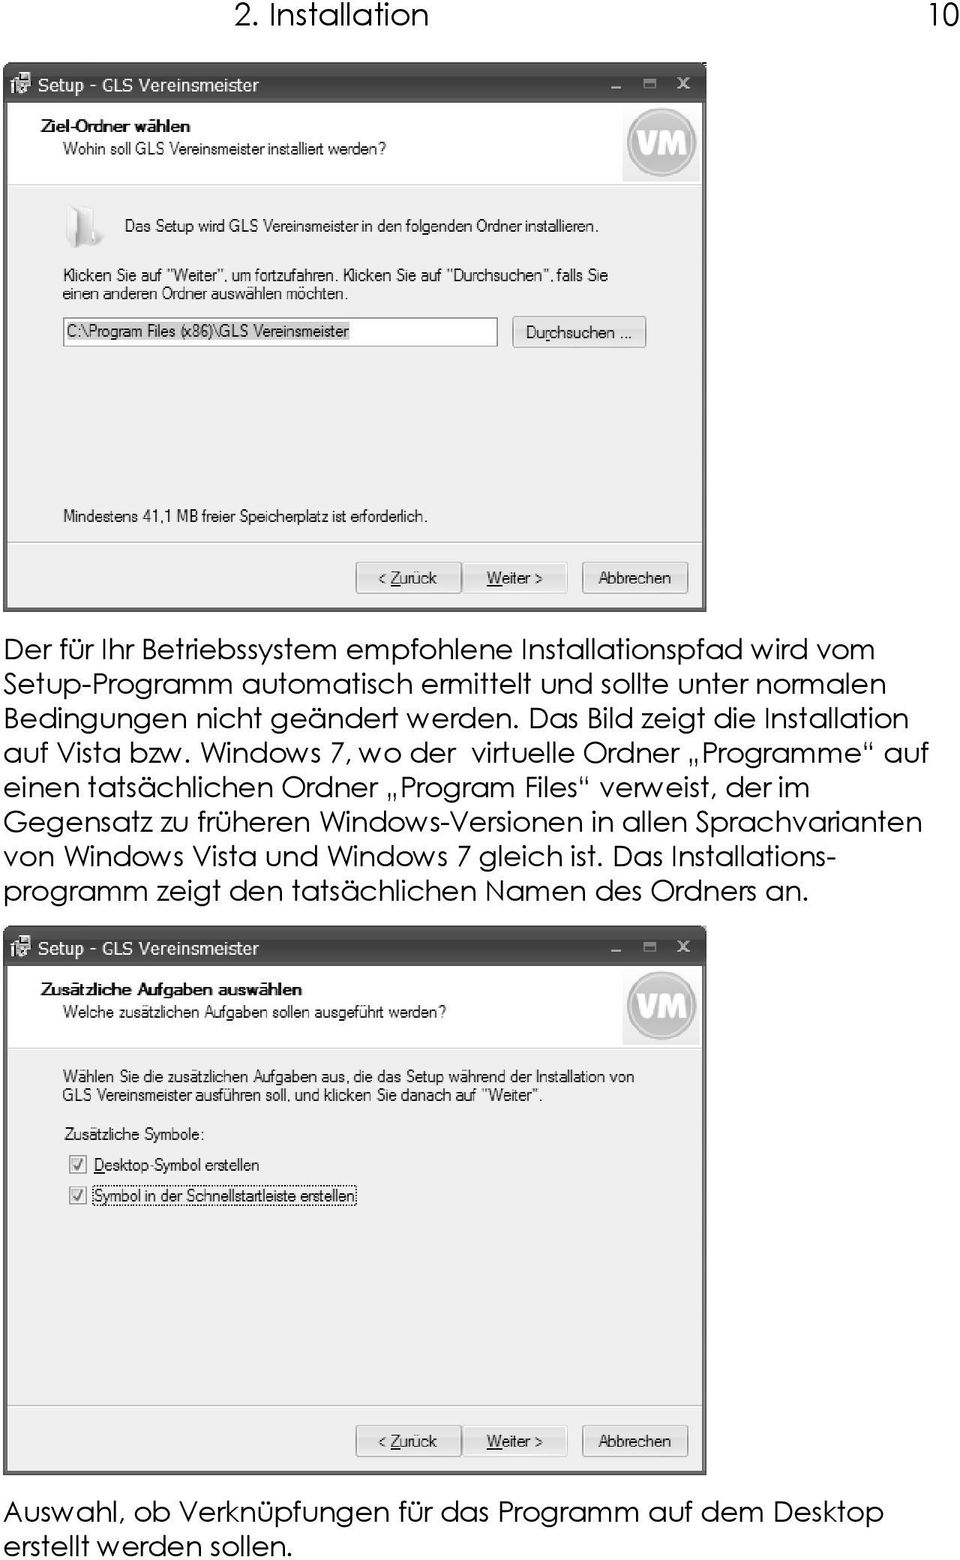 Windows 7, wo der virtuelle Ordner Programme auf einen tatsächlichen Ordner Program Files verweist, der im Gegensatz zu früheren Windows-Versionen in